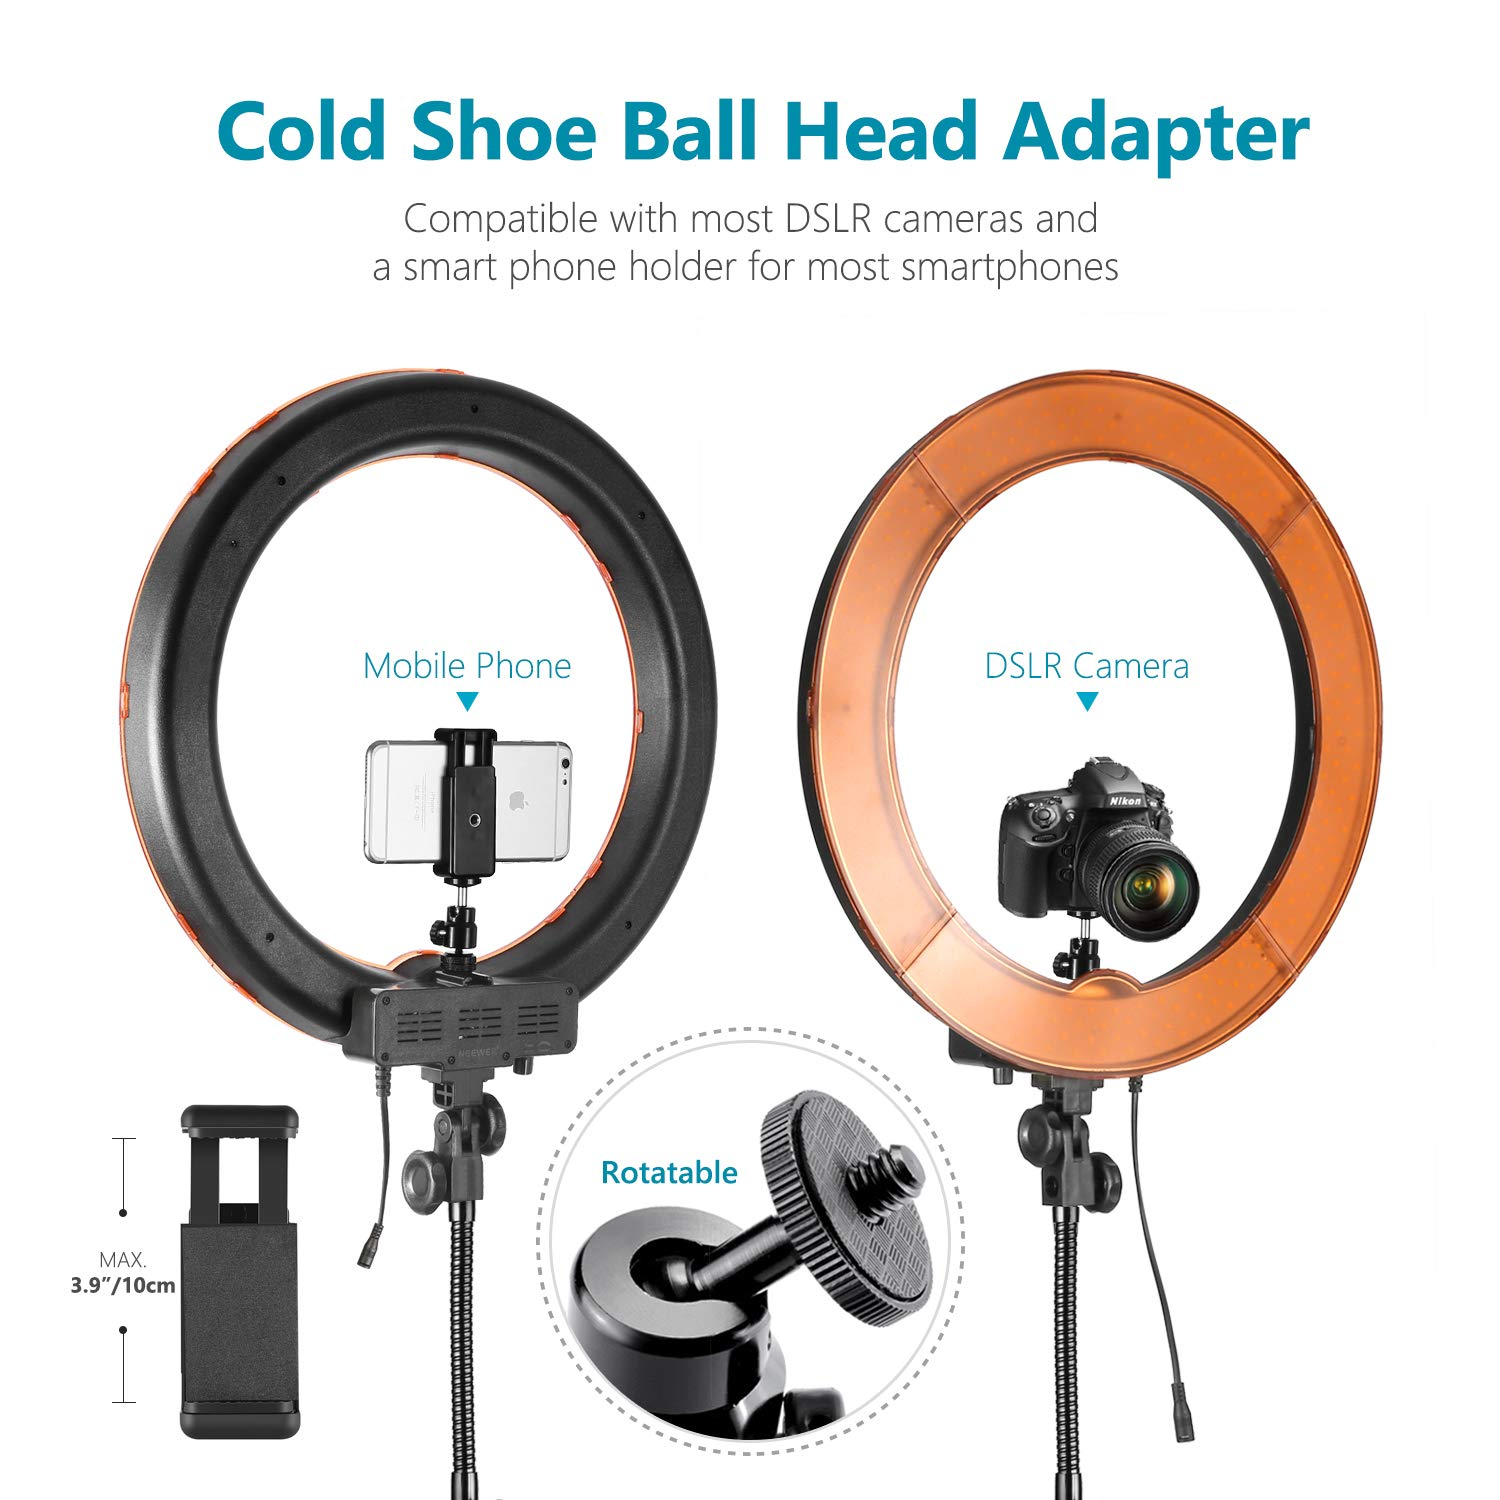 Neewer Desktop and Floor Ring Light Lighting Kit: 18 inches 55W 5500K Dimmable LED Ring Light with Floor Light Stand, Soft Tube, Tabletop Support Stand for Camera, Smartphone Video Make-up Shooting by Neewer (Image #7)